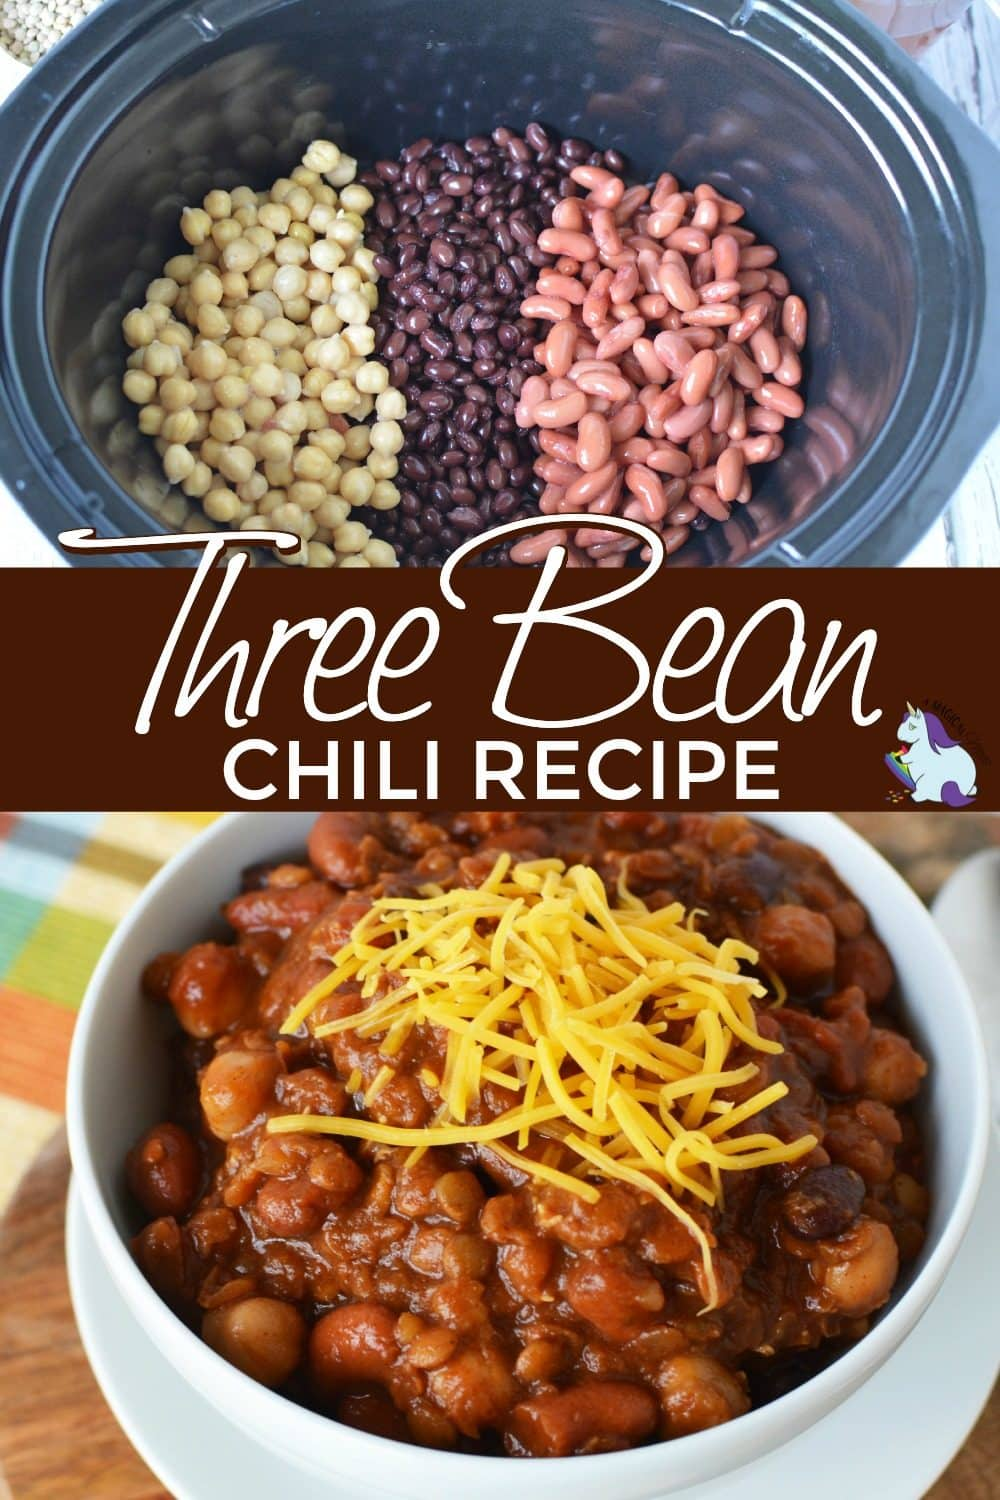 Bowls of chili with beans and topped with shredded cheddar.